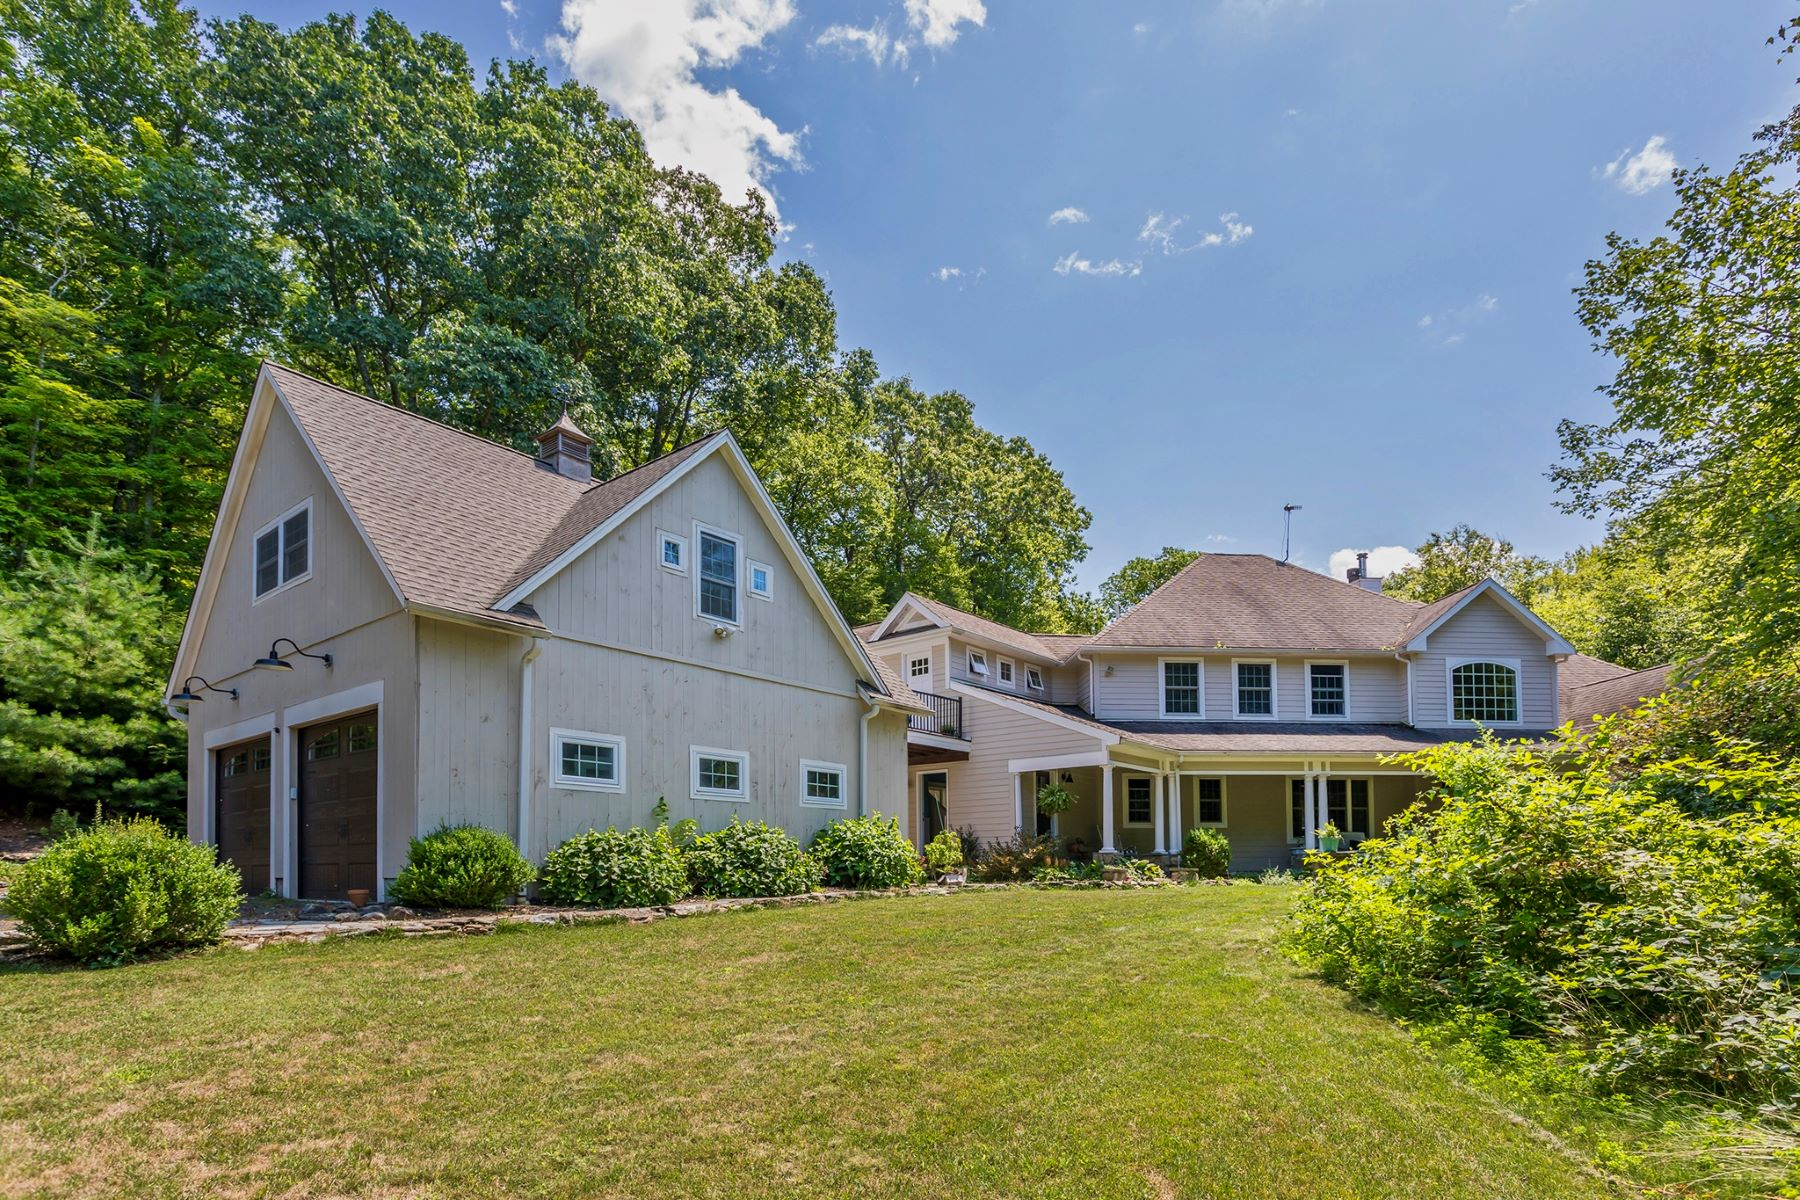 Single Family Homes for Sale at Custom-Built Traditional Roxbury Home 21 Forest Farm Drive Roxbury, Connecticut 06783 United States